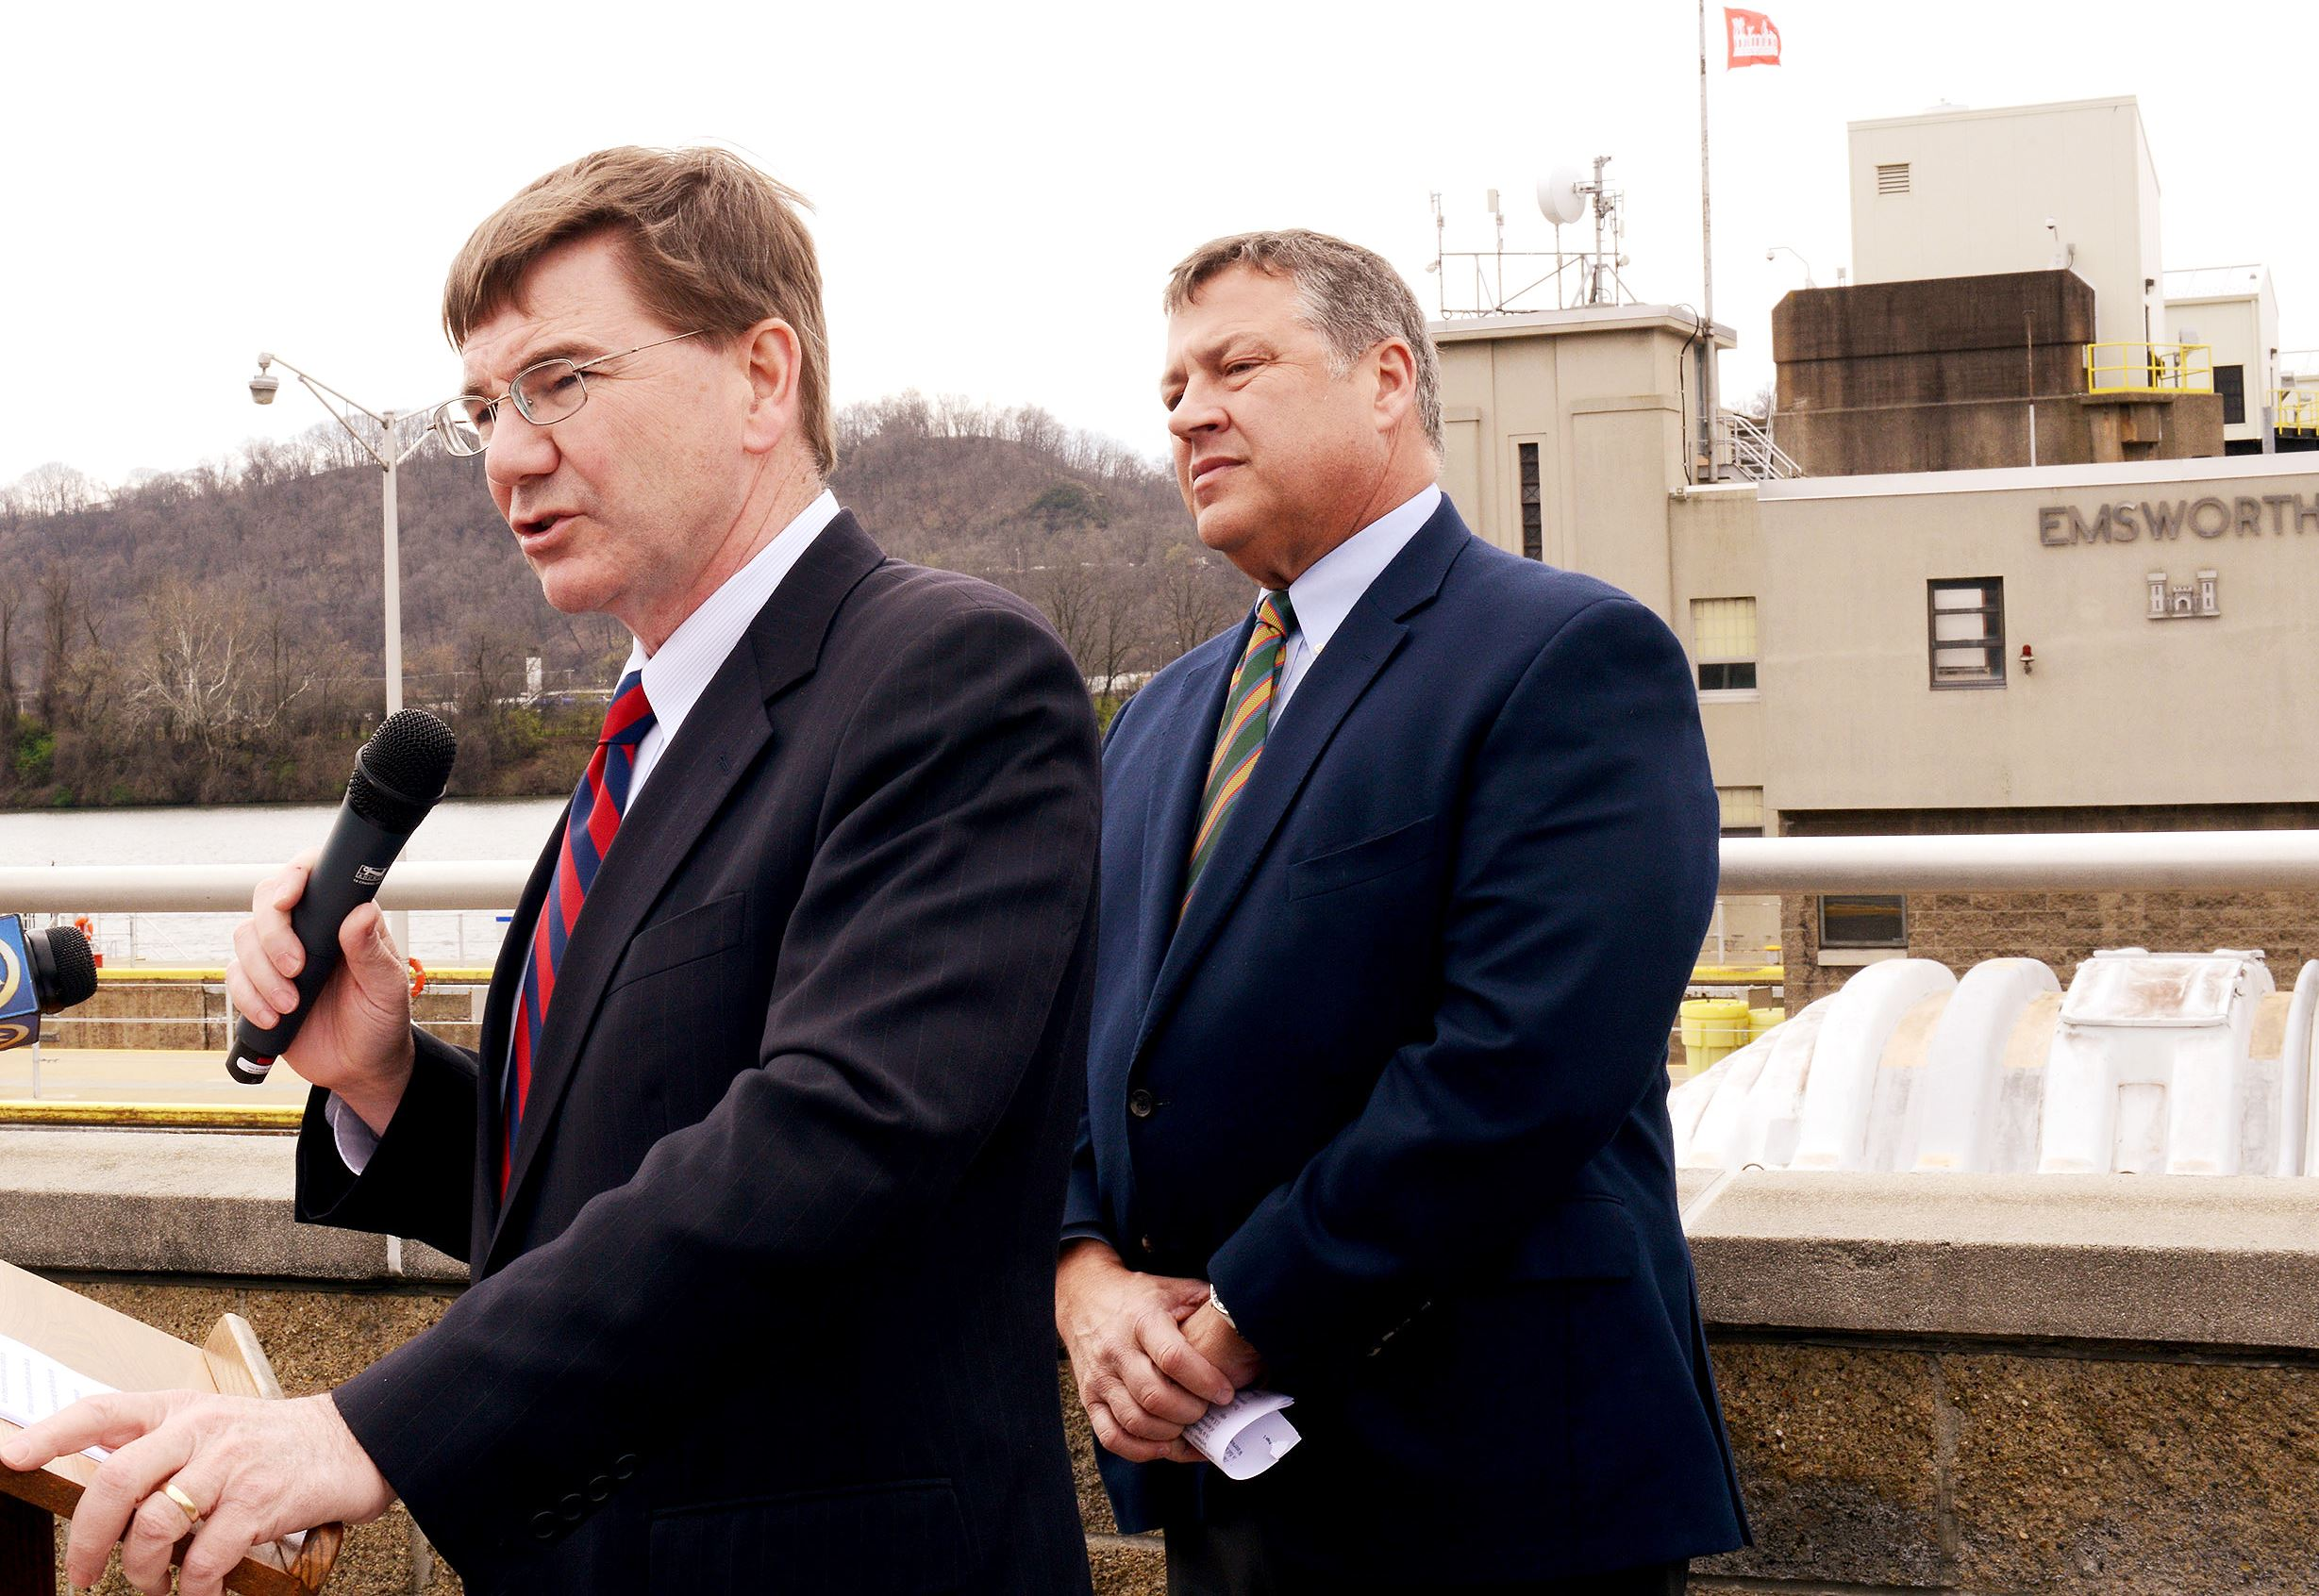 20160406ppLocks0407BIZ2-1 U.S. Rep. Keith Rothfus speaks about the importance of pressing for the completion of a long-delayed study about repairs to the Emsworth, Dashields and Montgomery locks and dams with U.S. Rep. Bill Shuster during a news event Wednesday at the Emsworth lock and dam.